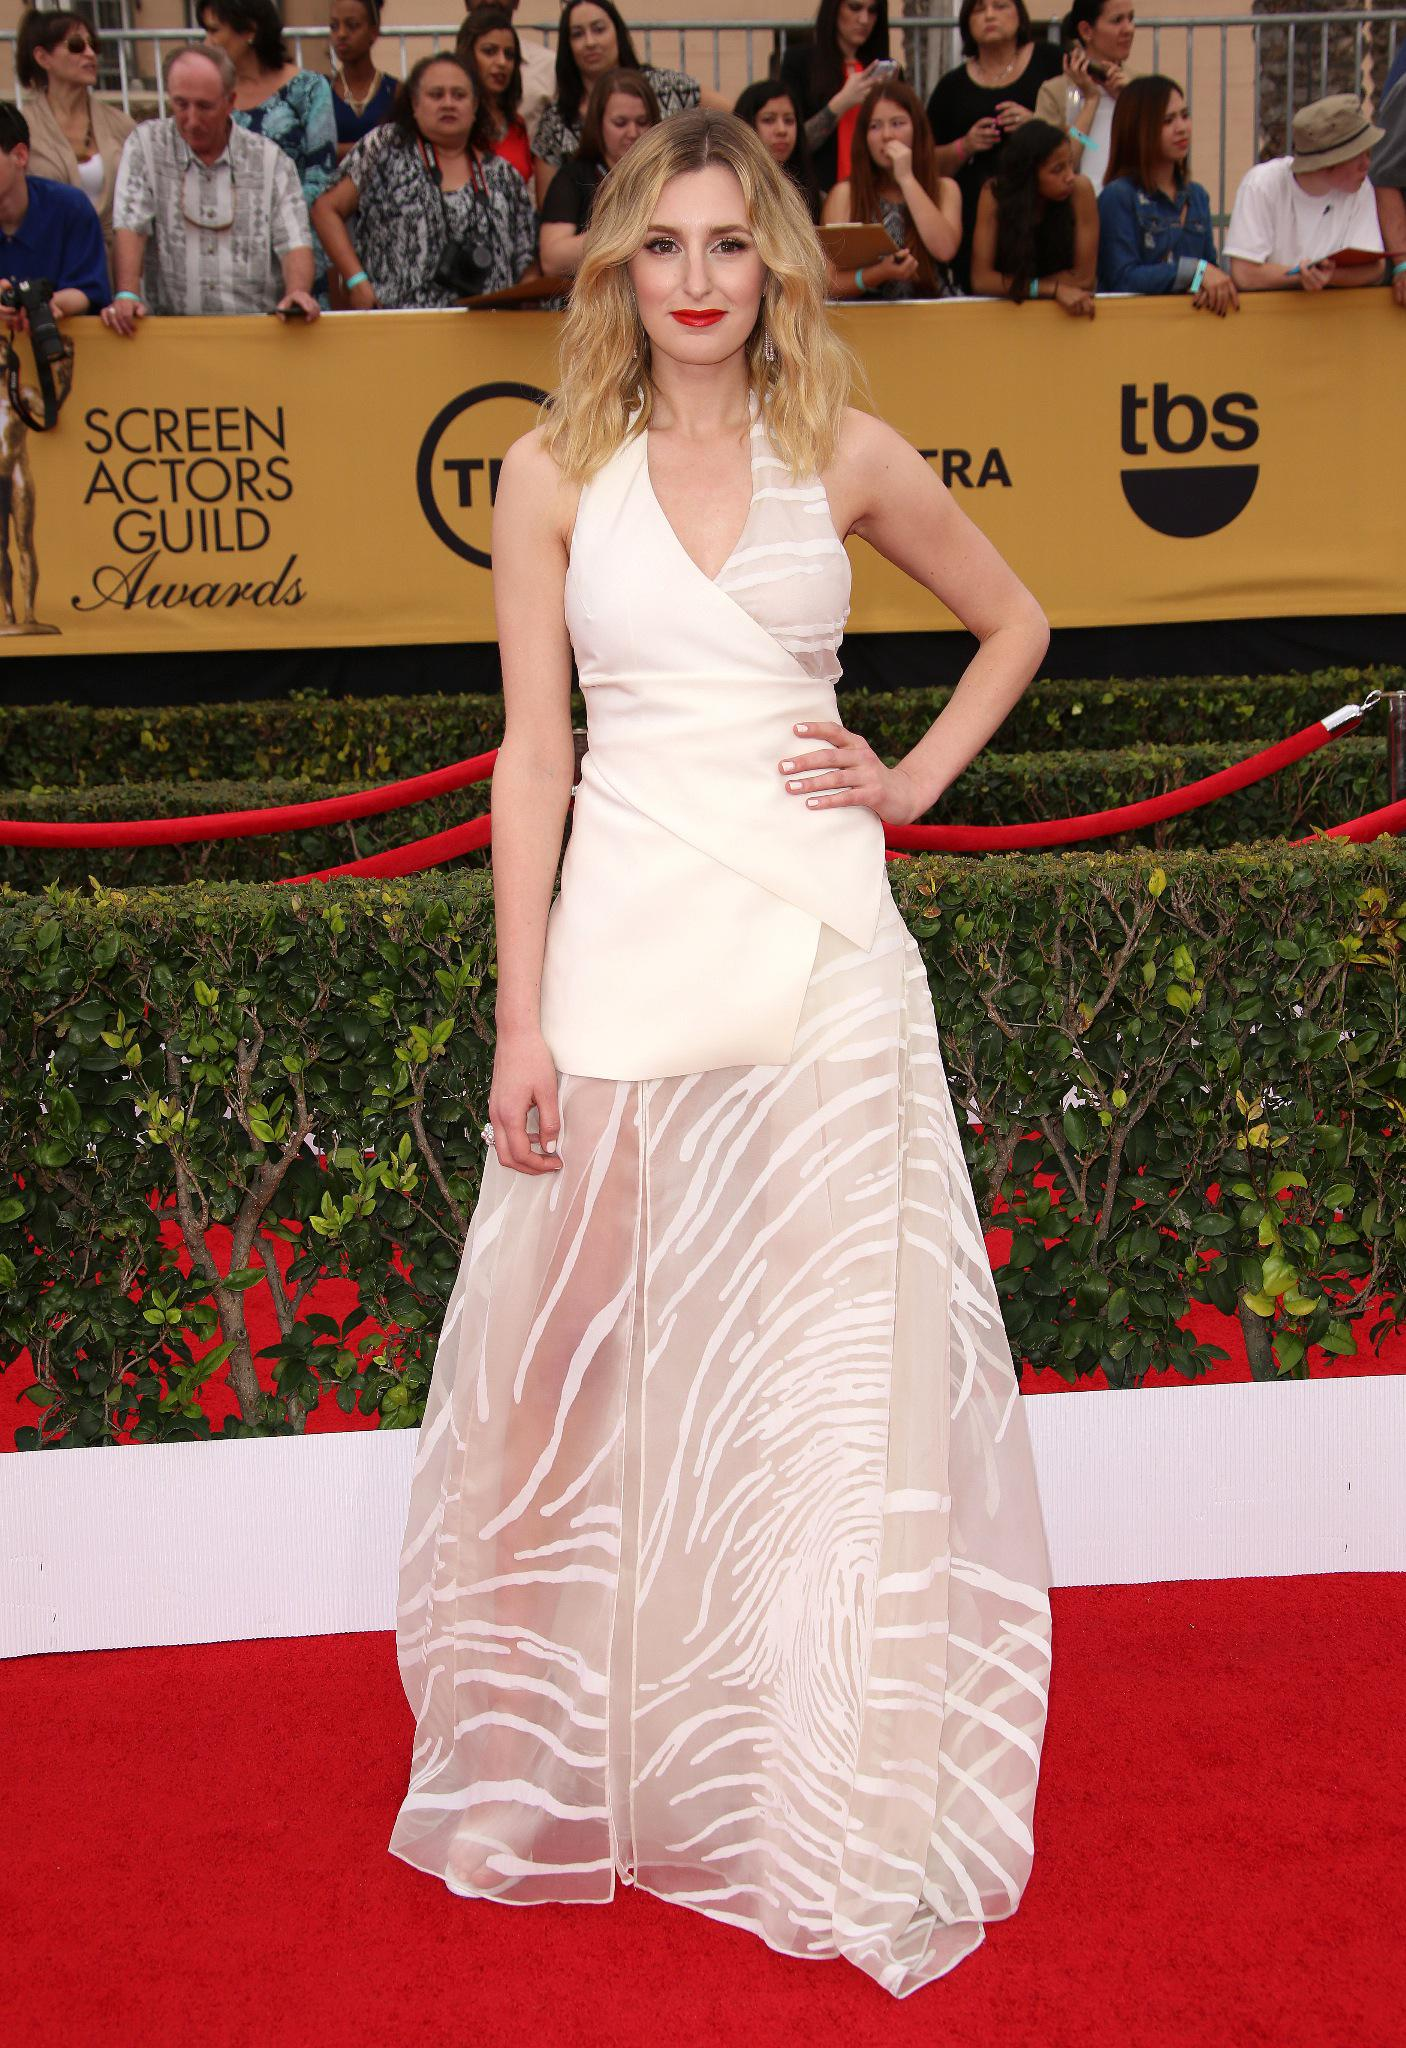 Our very own Laura Carmichael is looking resplendent in white. See more here: http://t.co/rMASkJdsgB #SAGAwards http://t.co/pk3RocR0L8